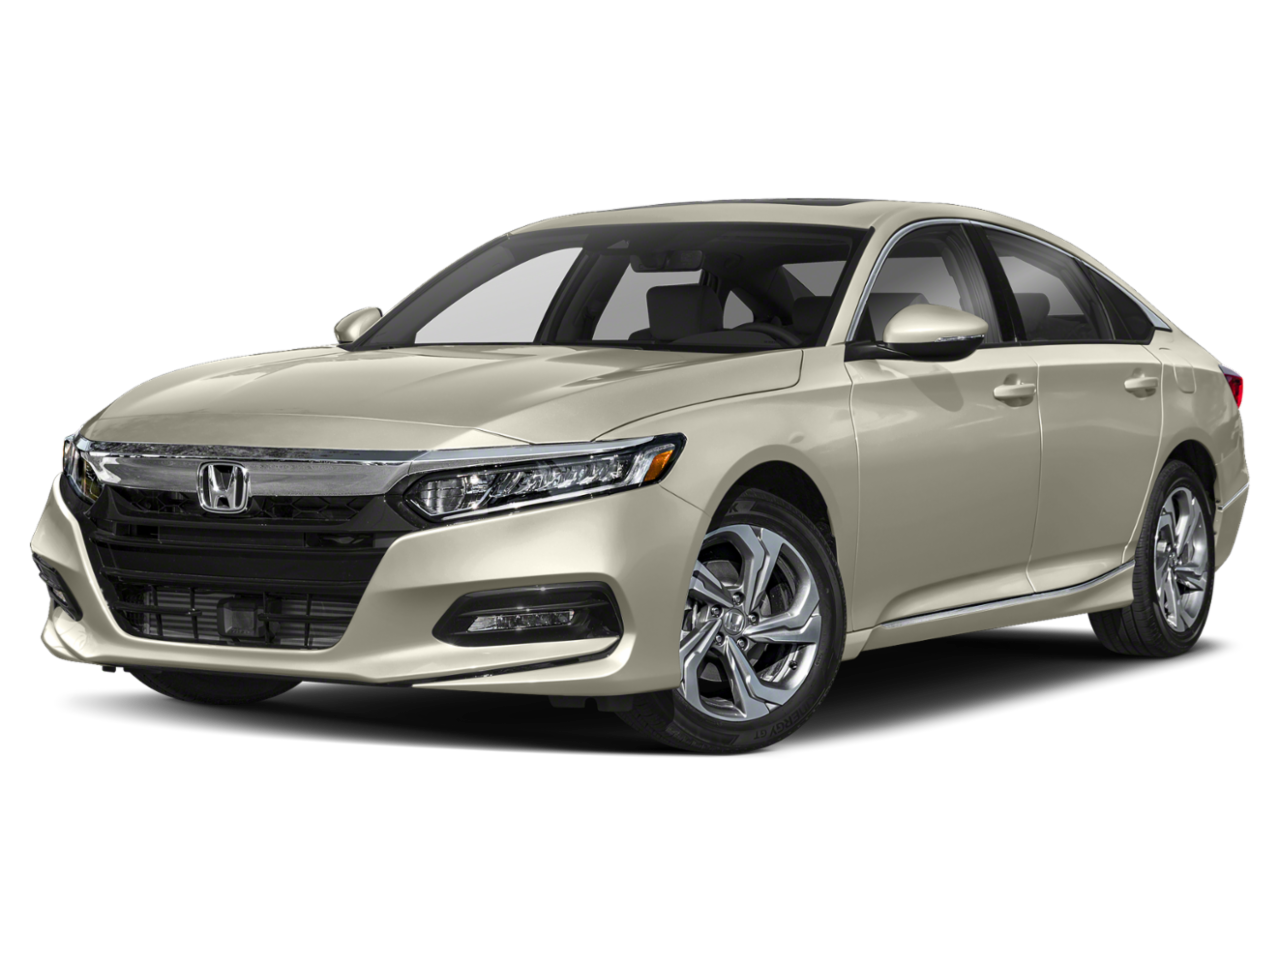 Honda 2020 Accord Sedan EX-L 1.5T